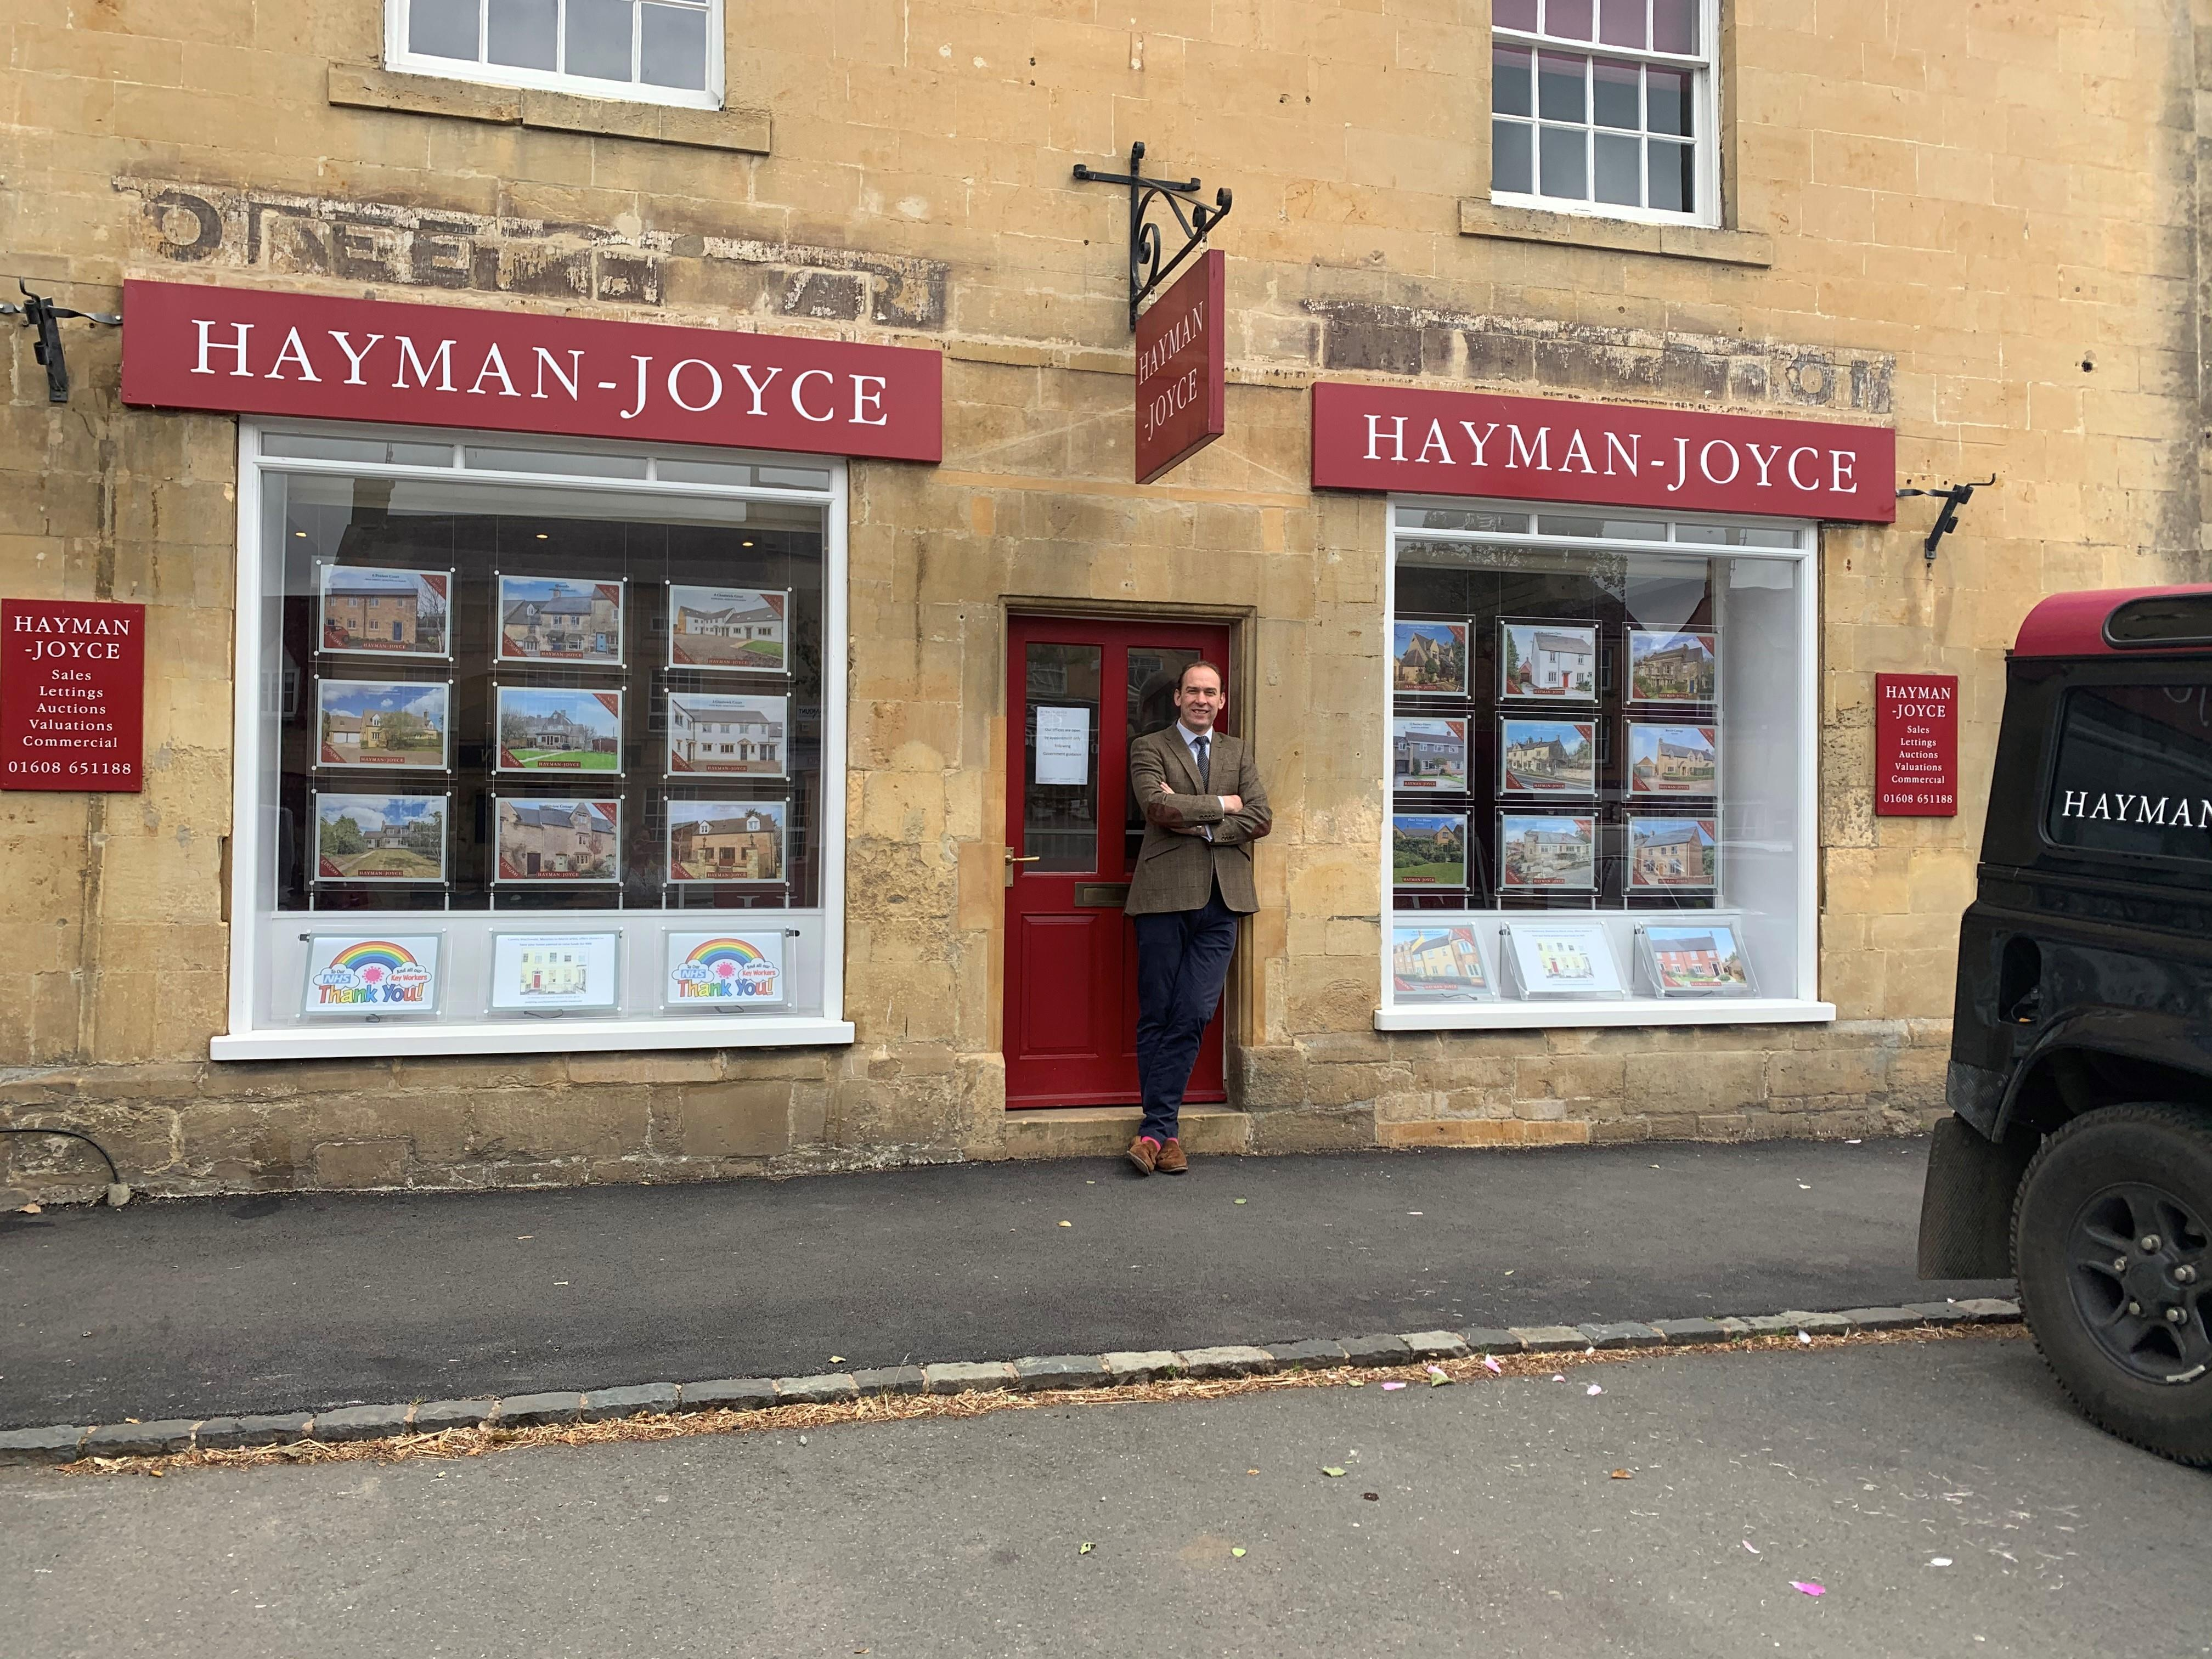 Hayman-Joyce reopen their doors and help families move to the Cotswolds again